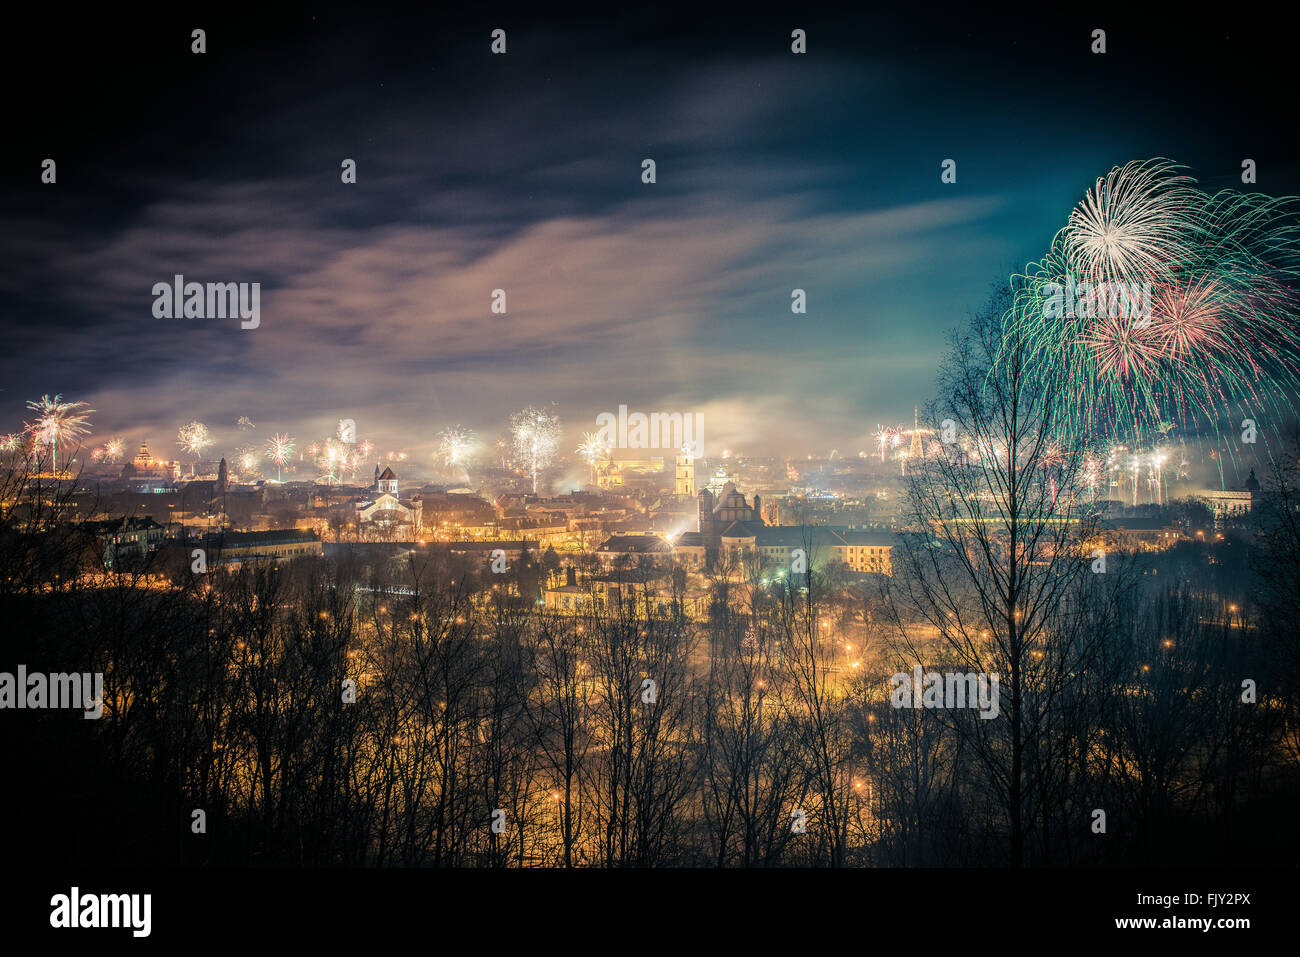 Firework Exploding Over Illuminated City Against Sky - Stock Image